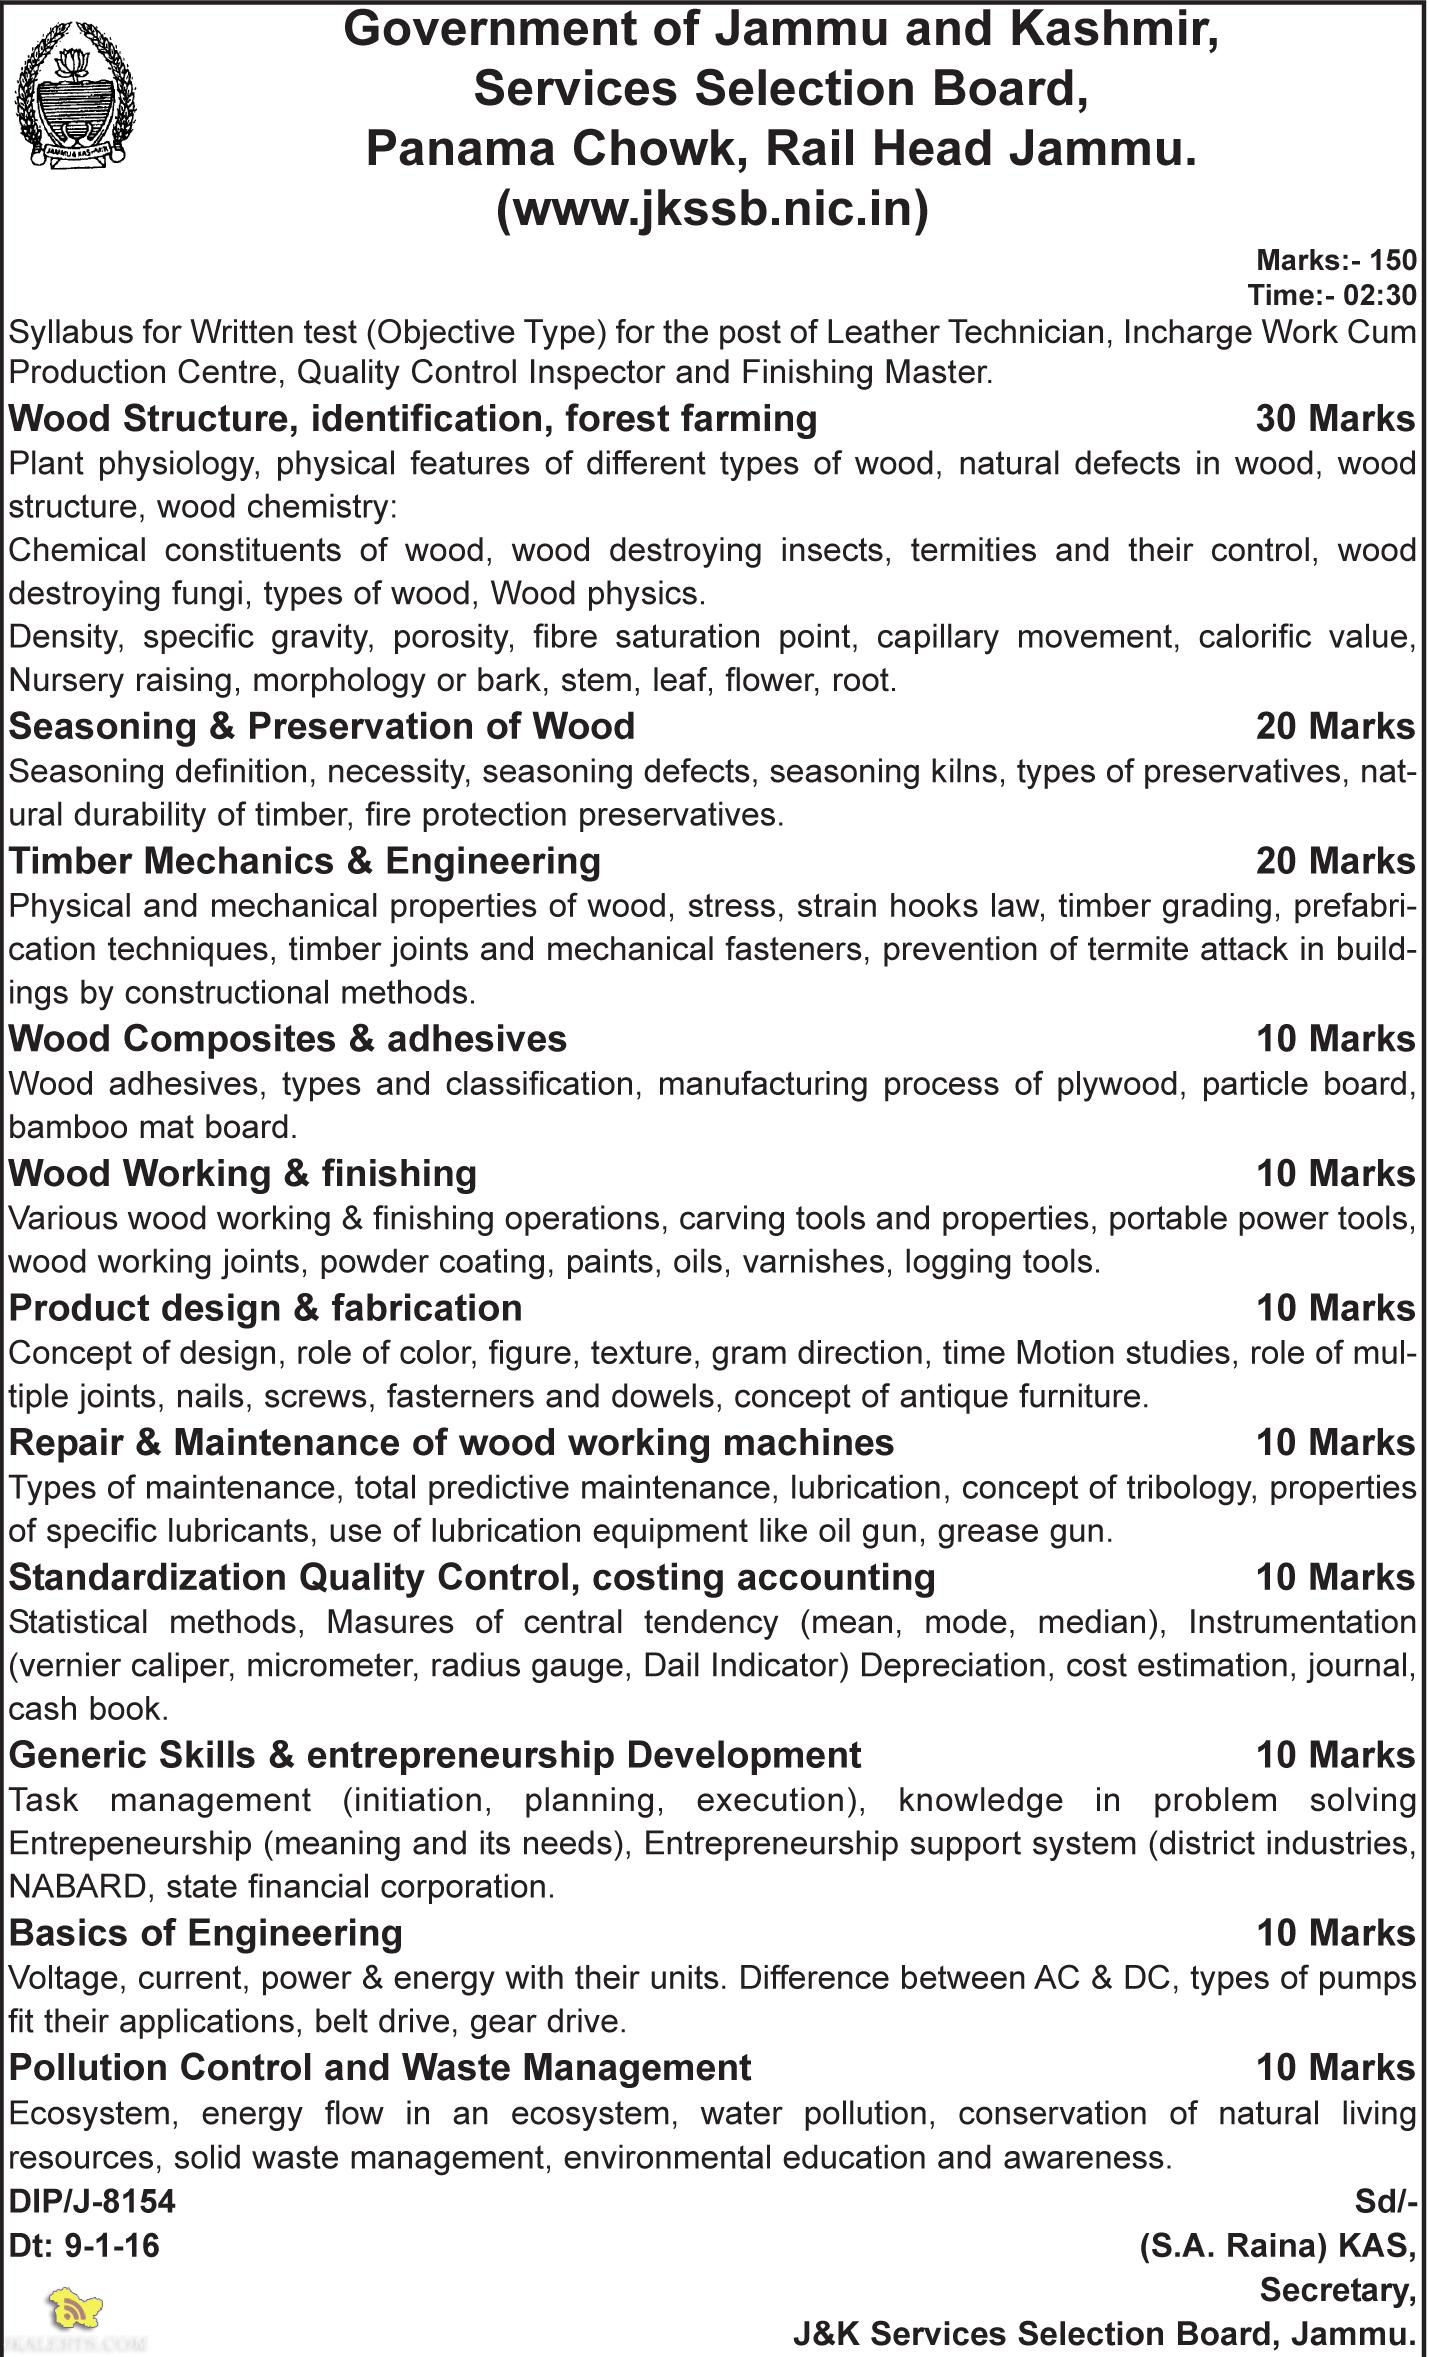 JKSSB Syllabus for Leather Technician, Incharge Work Cum Production Centre, Quality Control Inspector and Finishing Master